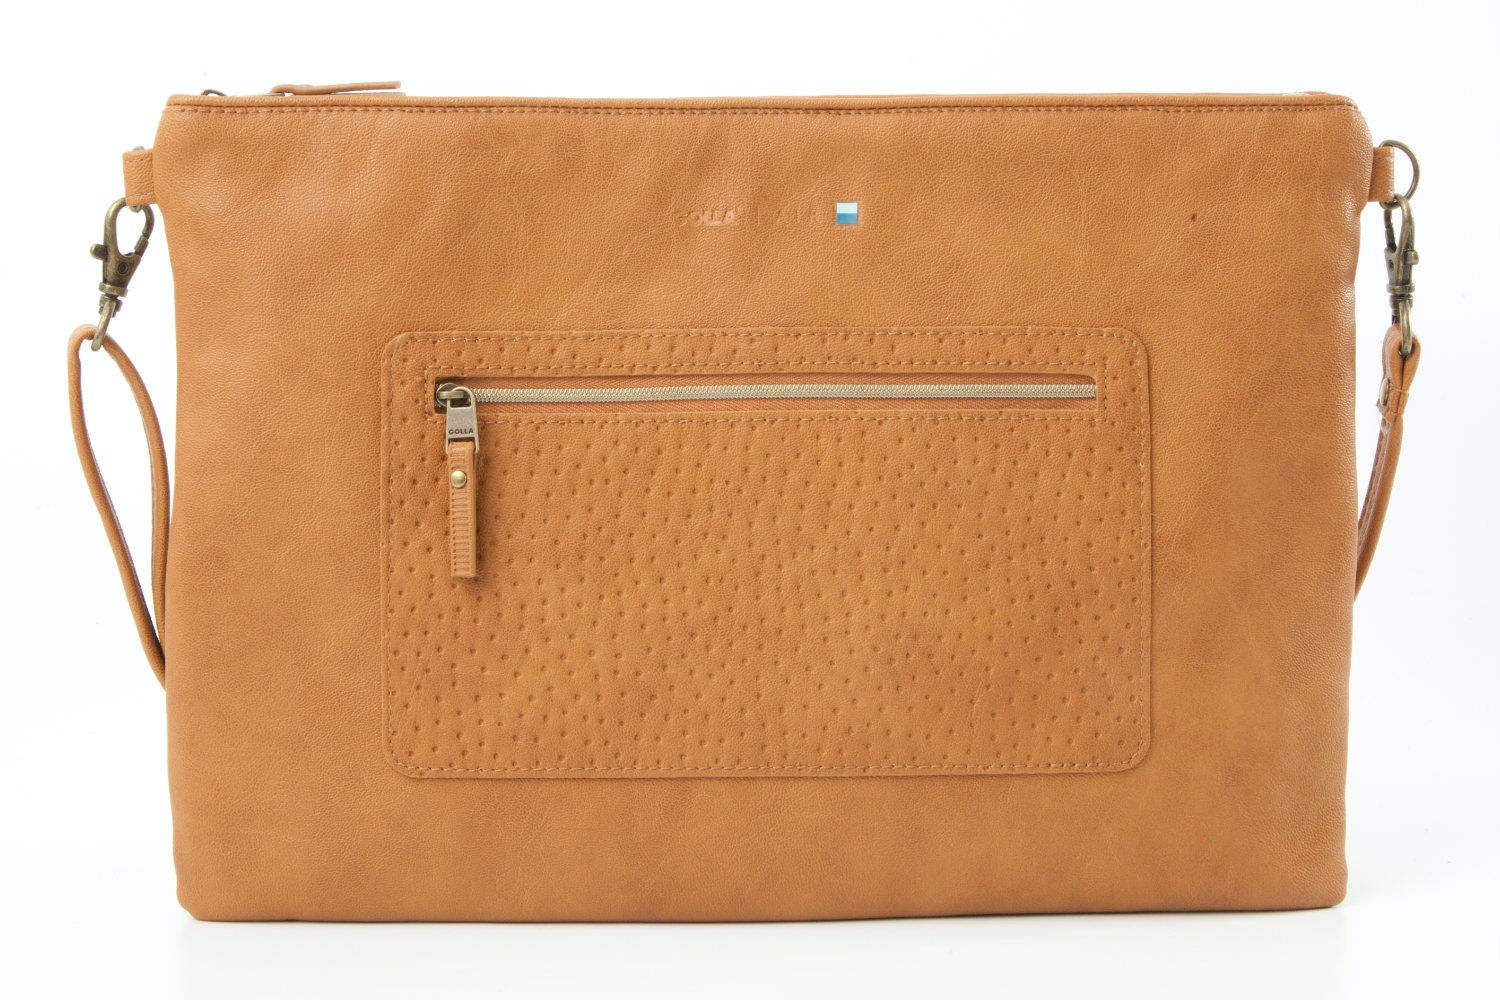 "Golla Air Slim Sleeve  11"" Macbook Air 